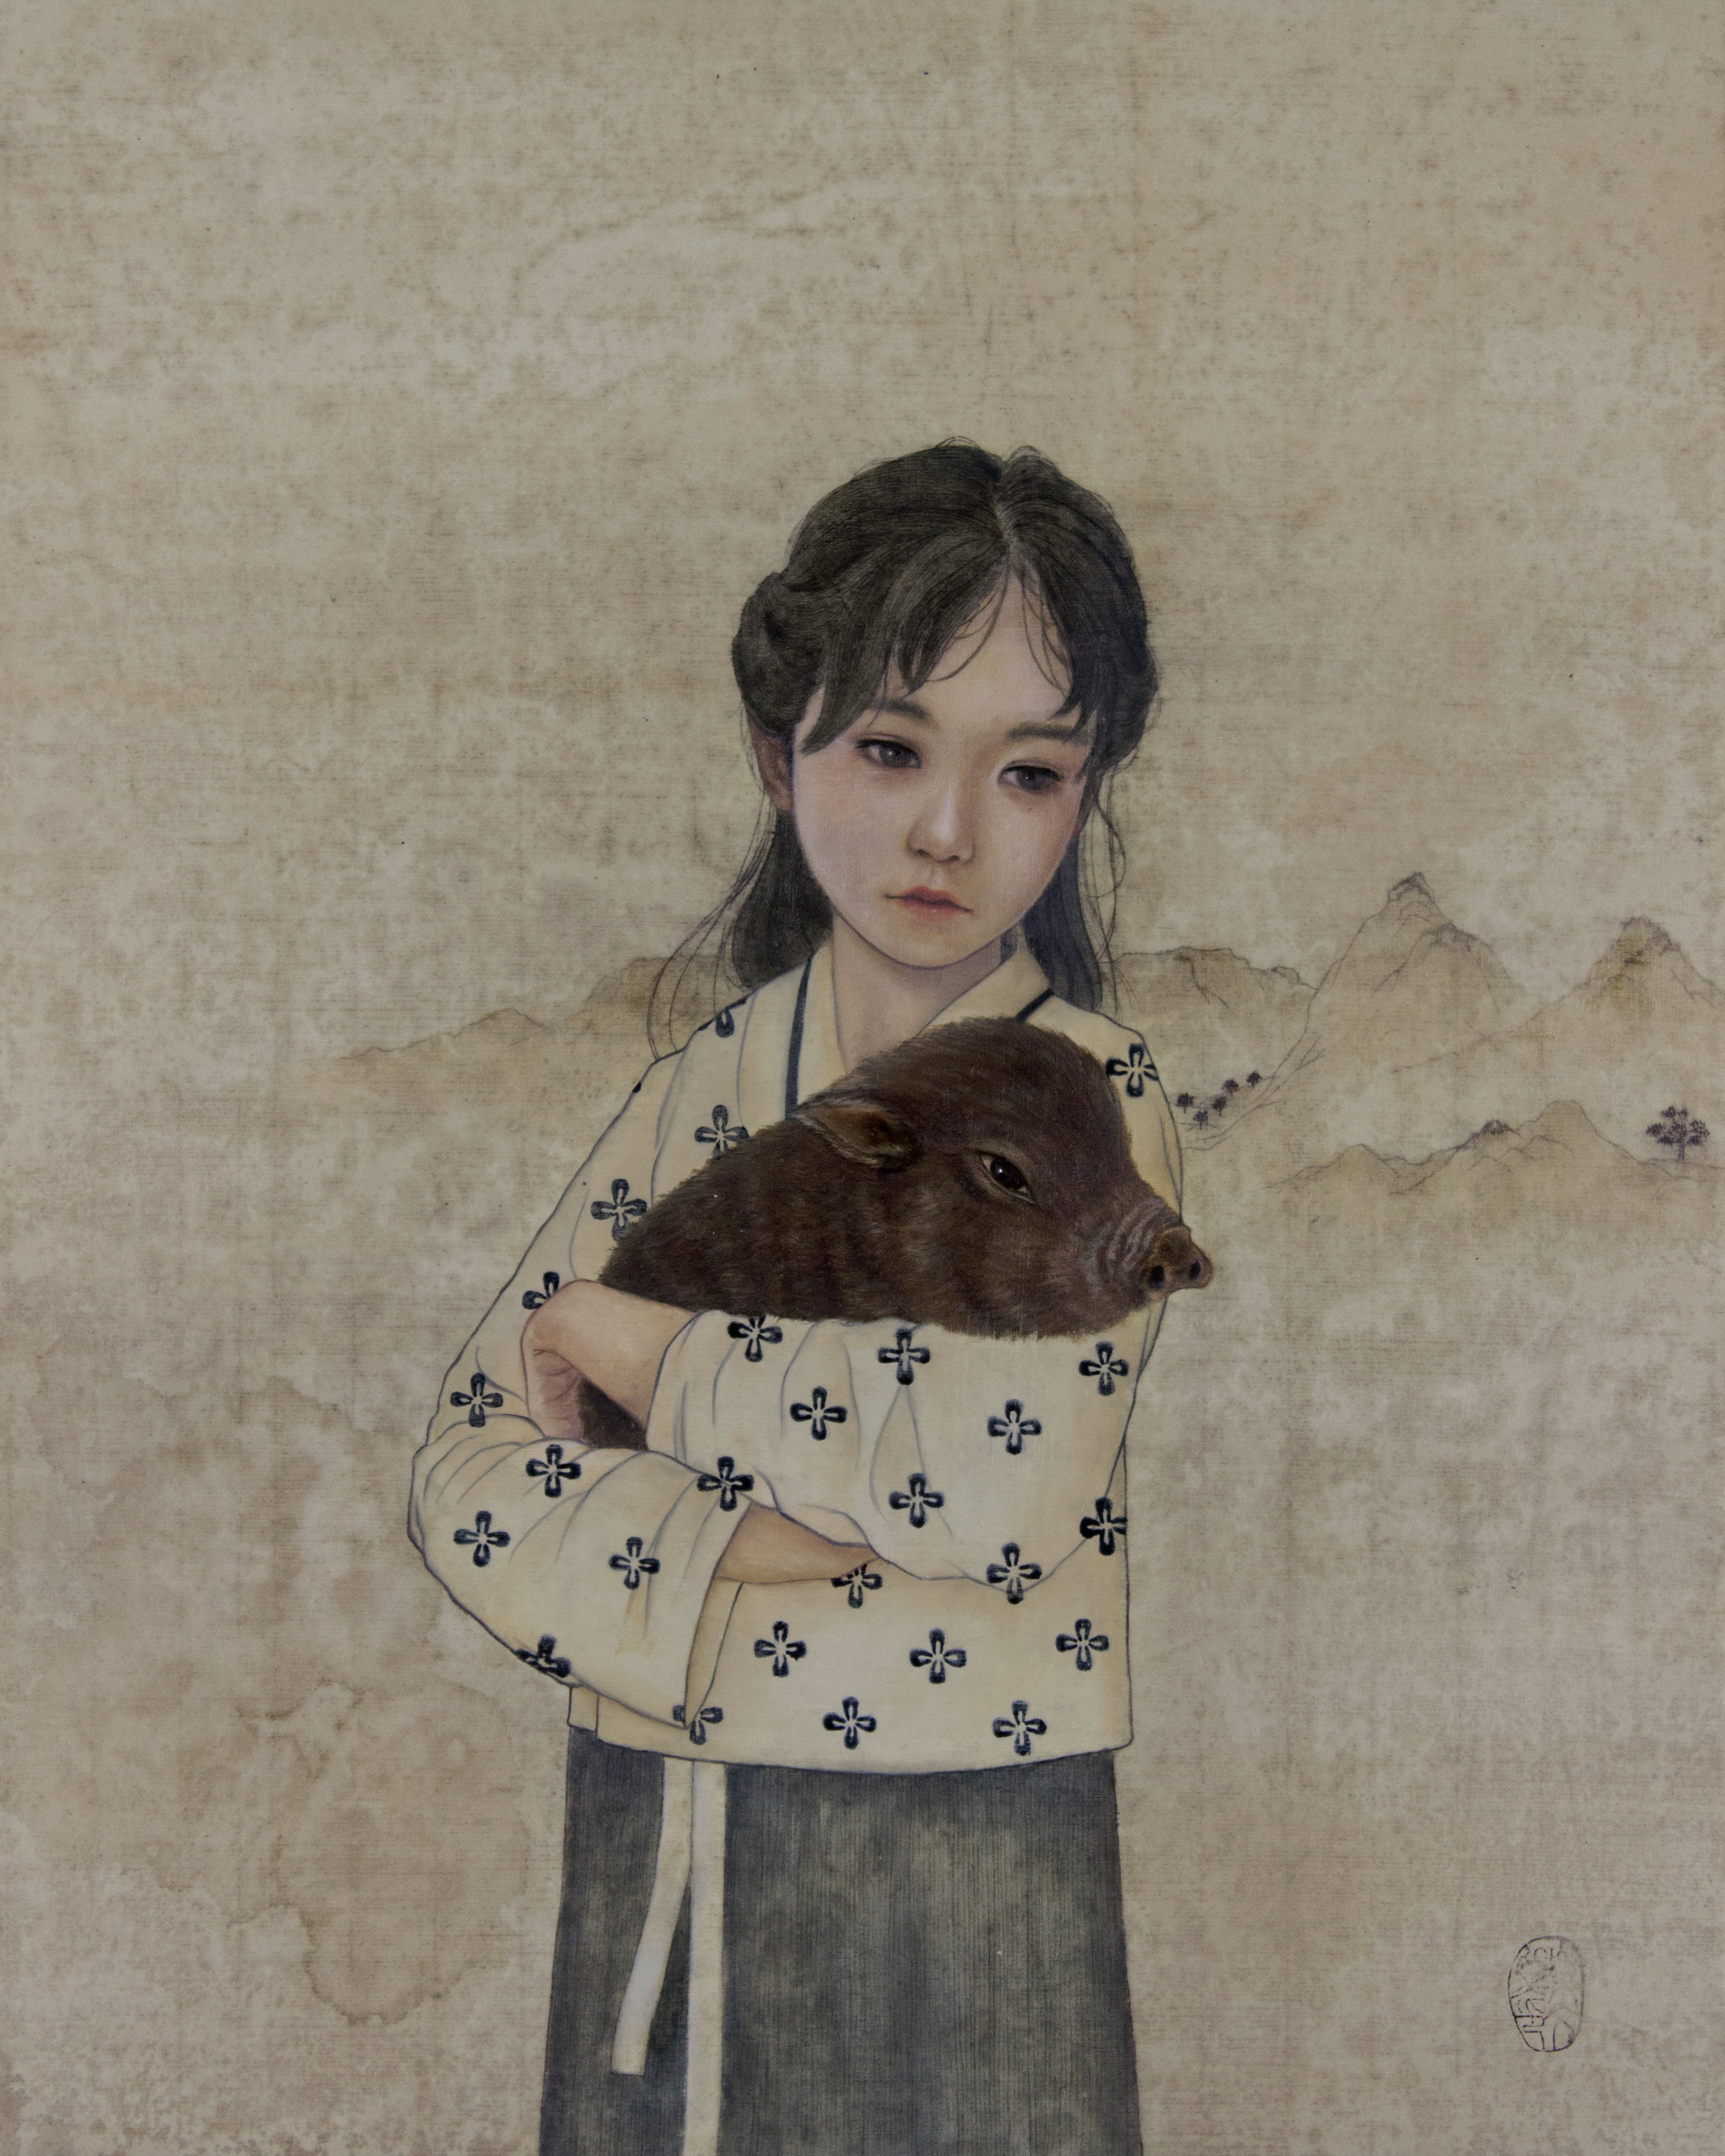 The Sixth Missed, Nostalgia Chinese New Year Inspired Contemporary painting by Maine artist Lavennz Ooi